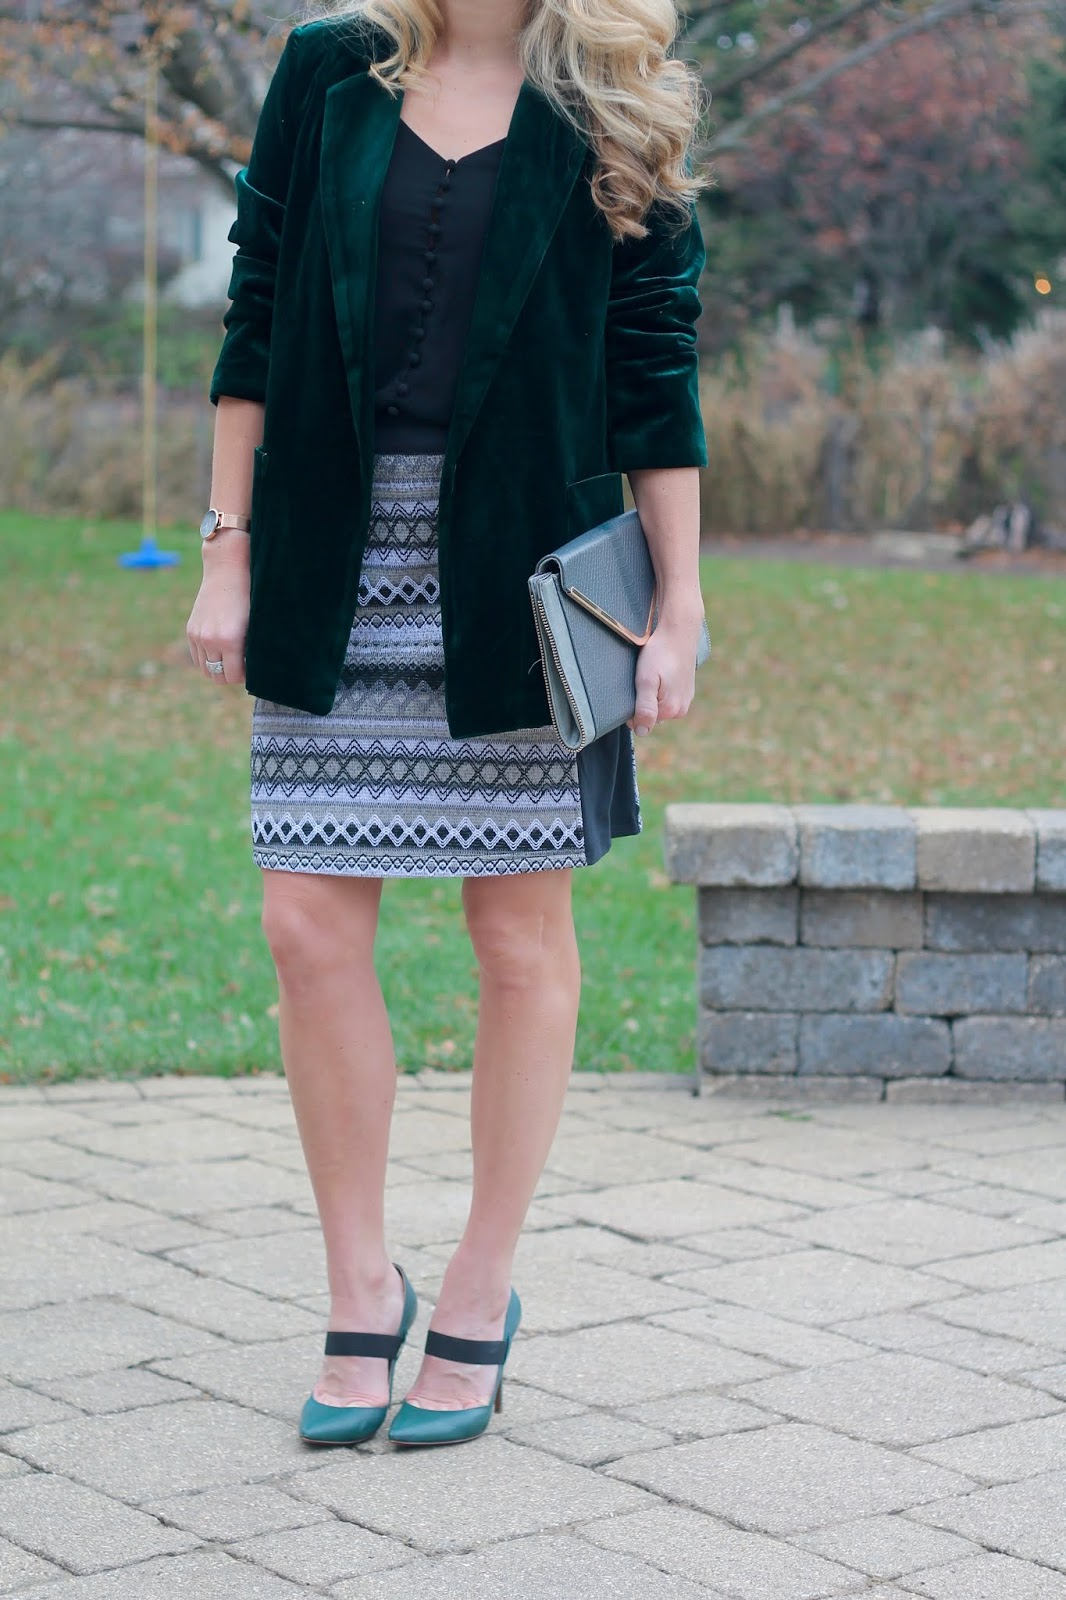 green velvet blazer, holiday outfits, aventura jacquard skirt, black button up cami, grey envelope clutch, starking watch review, giveaway, cotton underwear